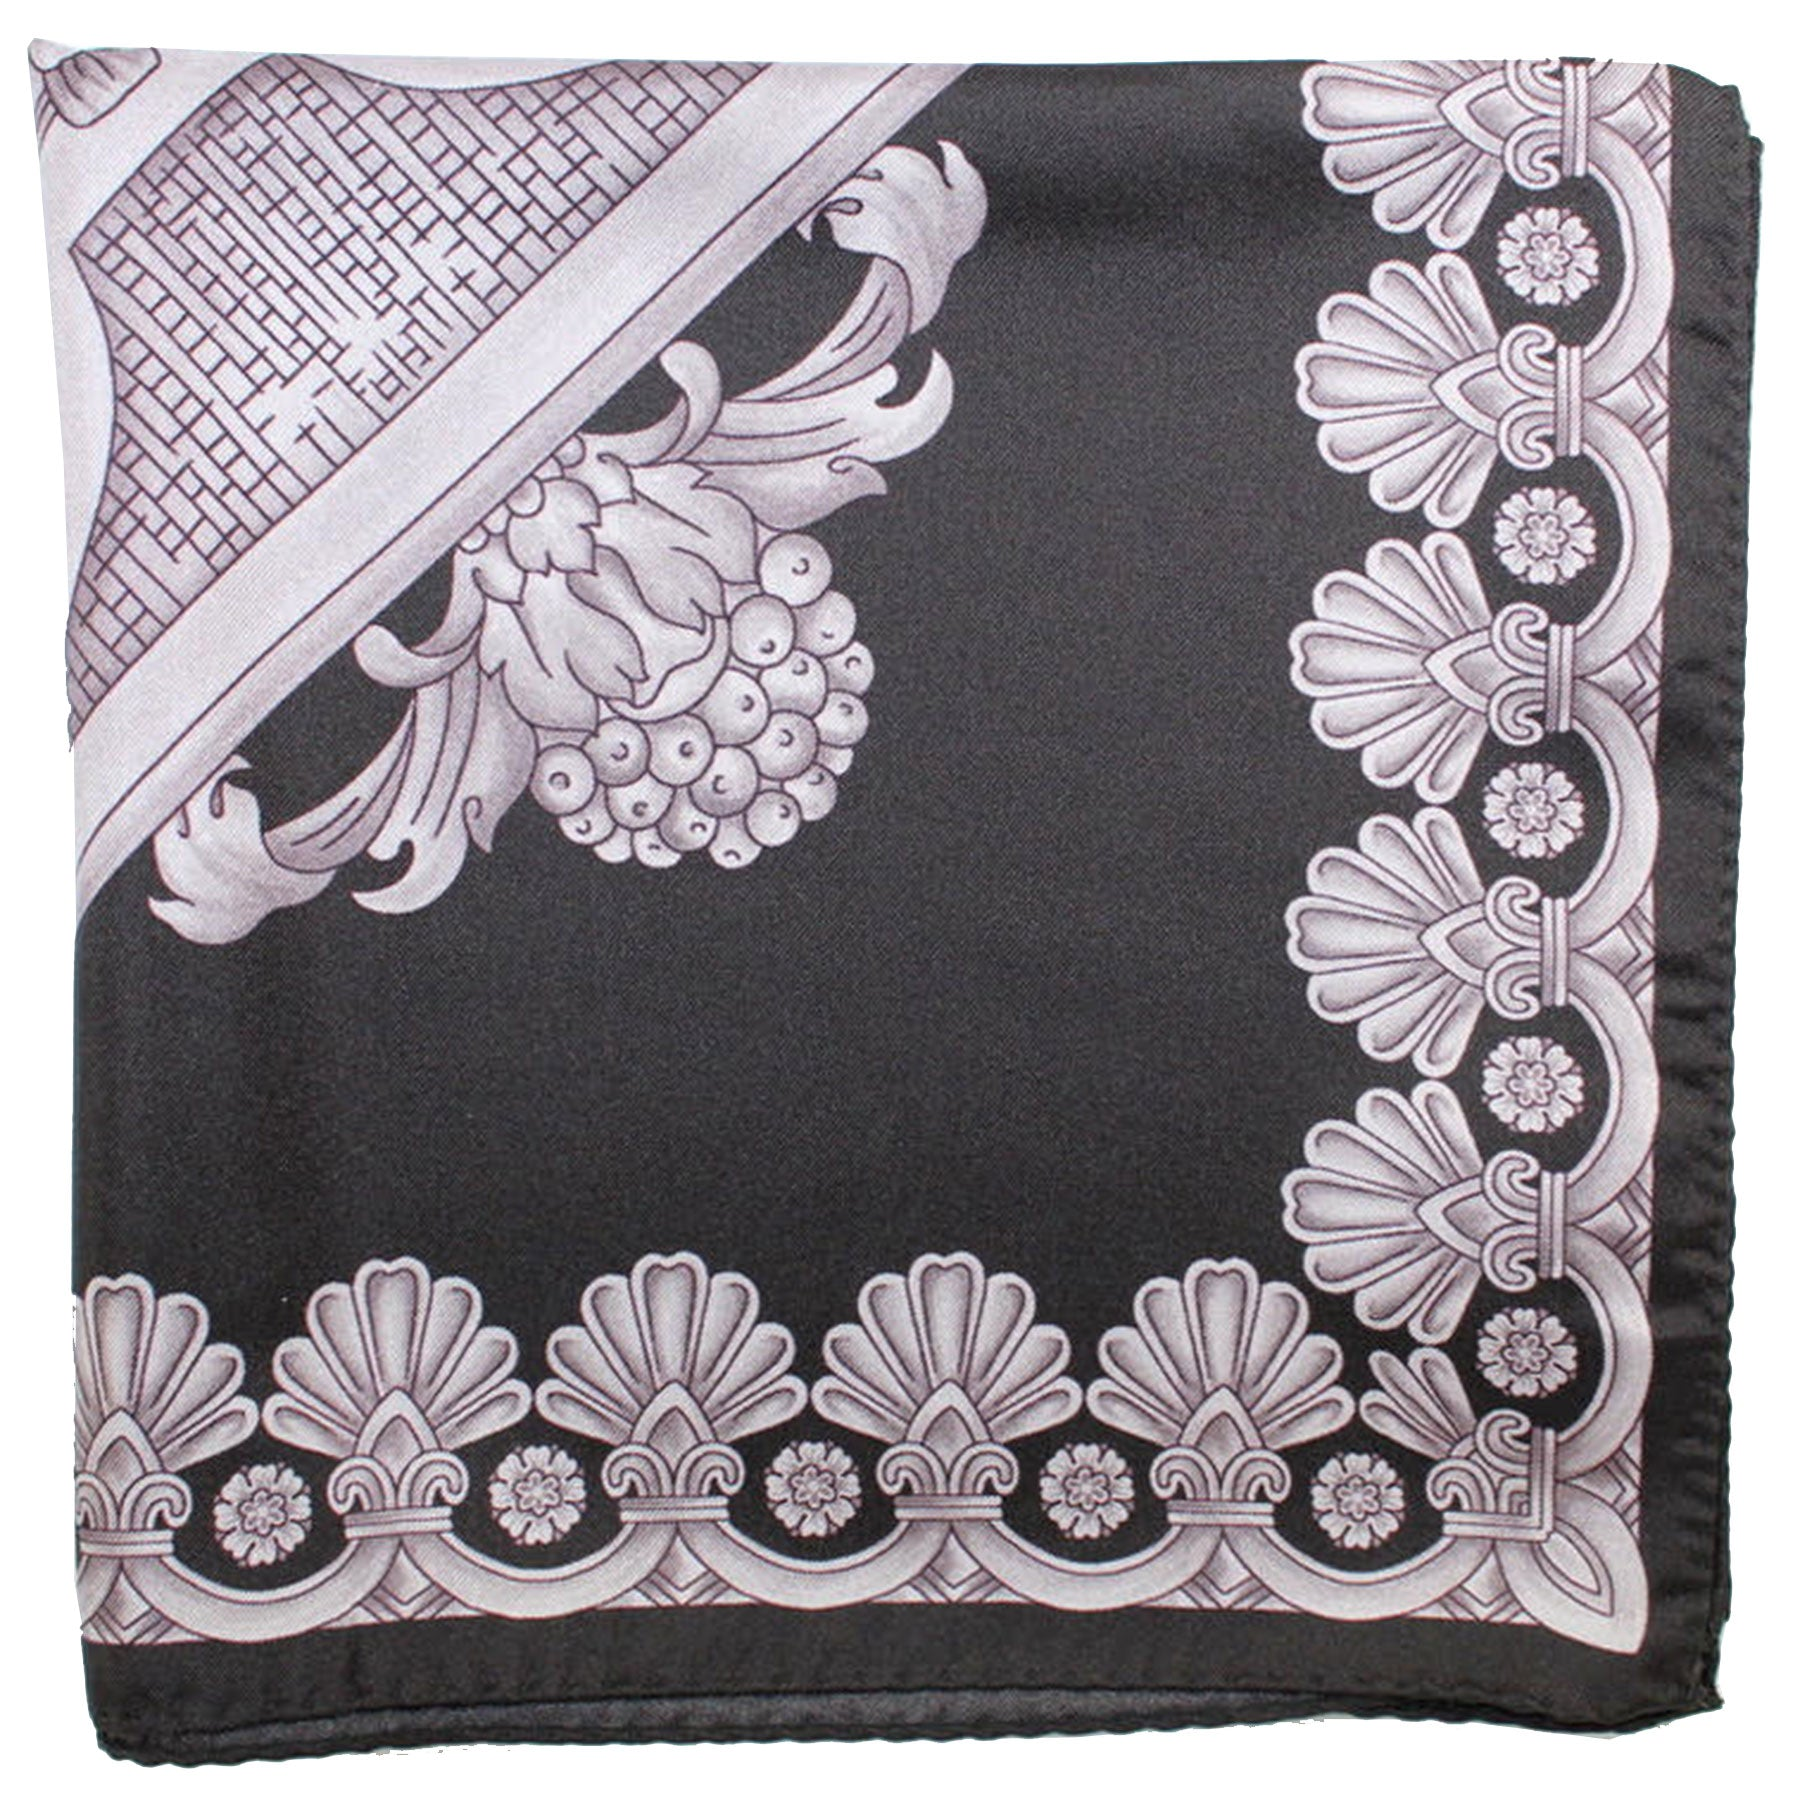 Versace Silk Scarf Black Gray Baroque - Large Square Scarf